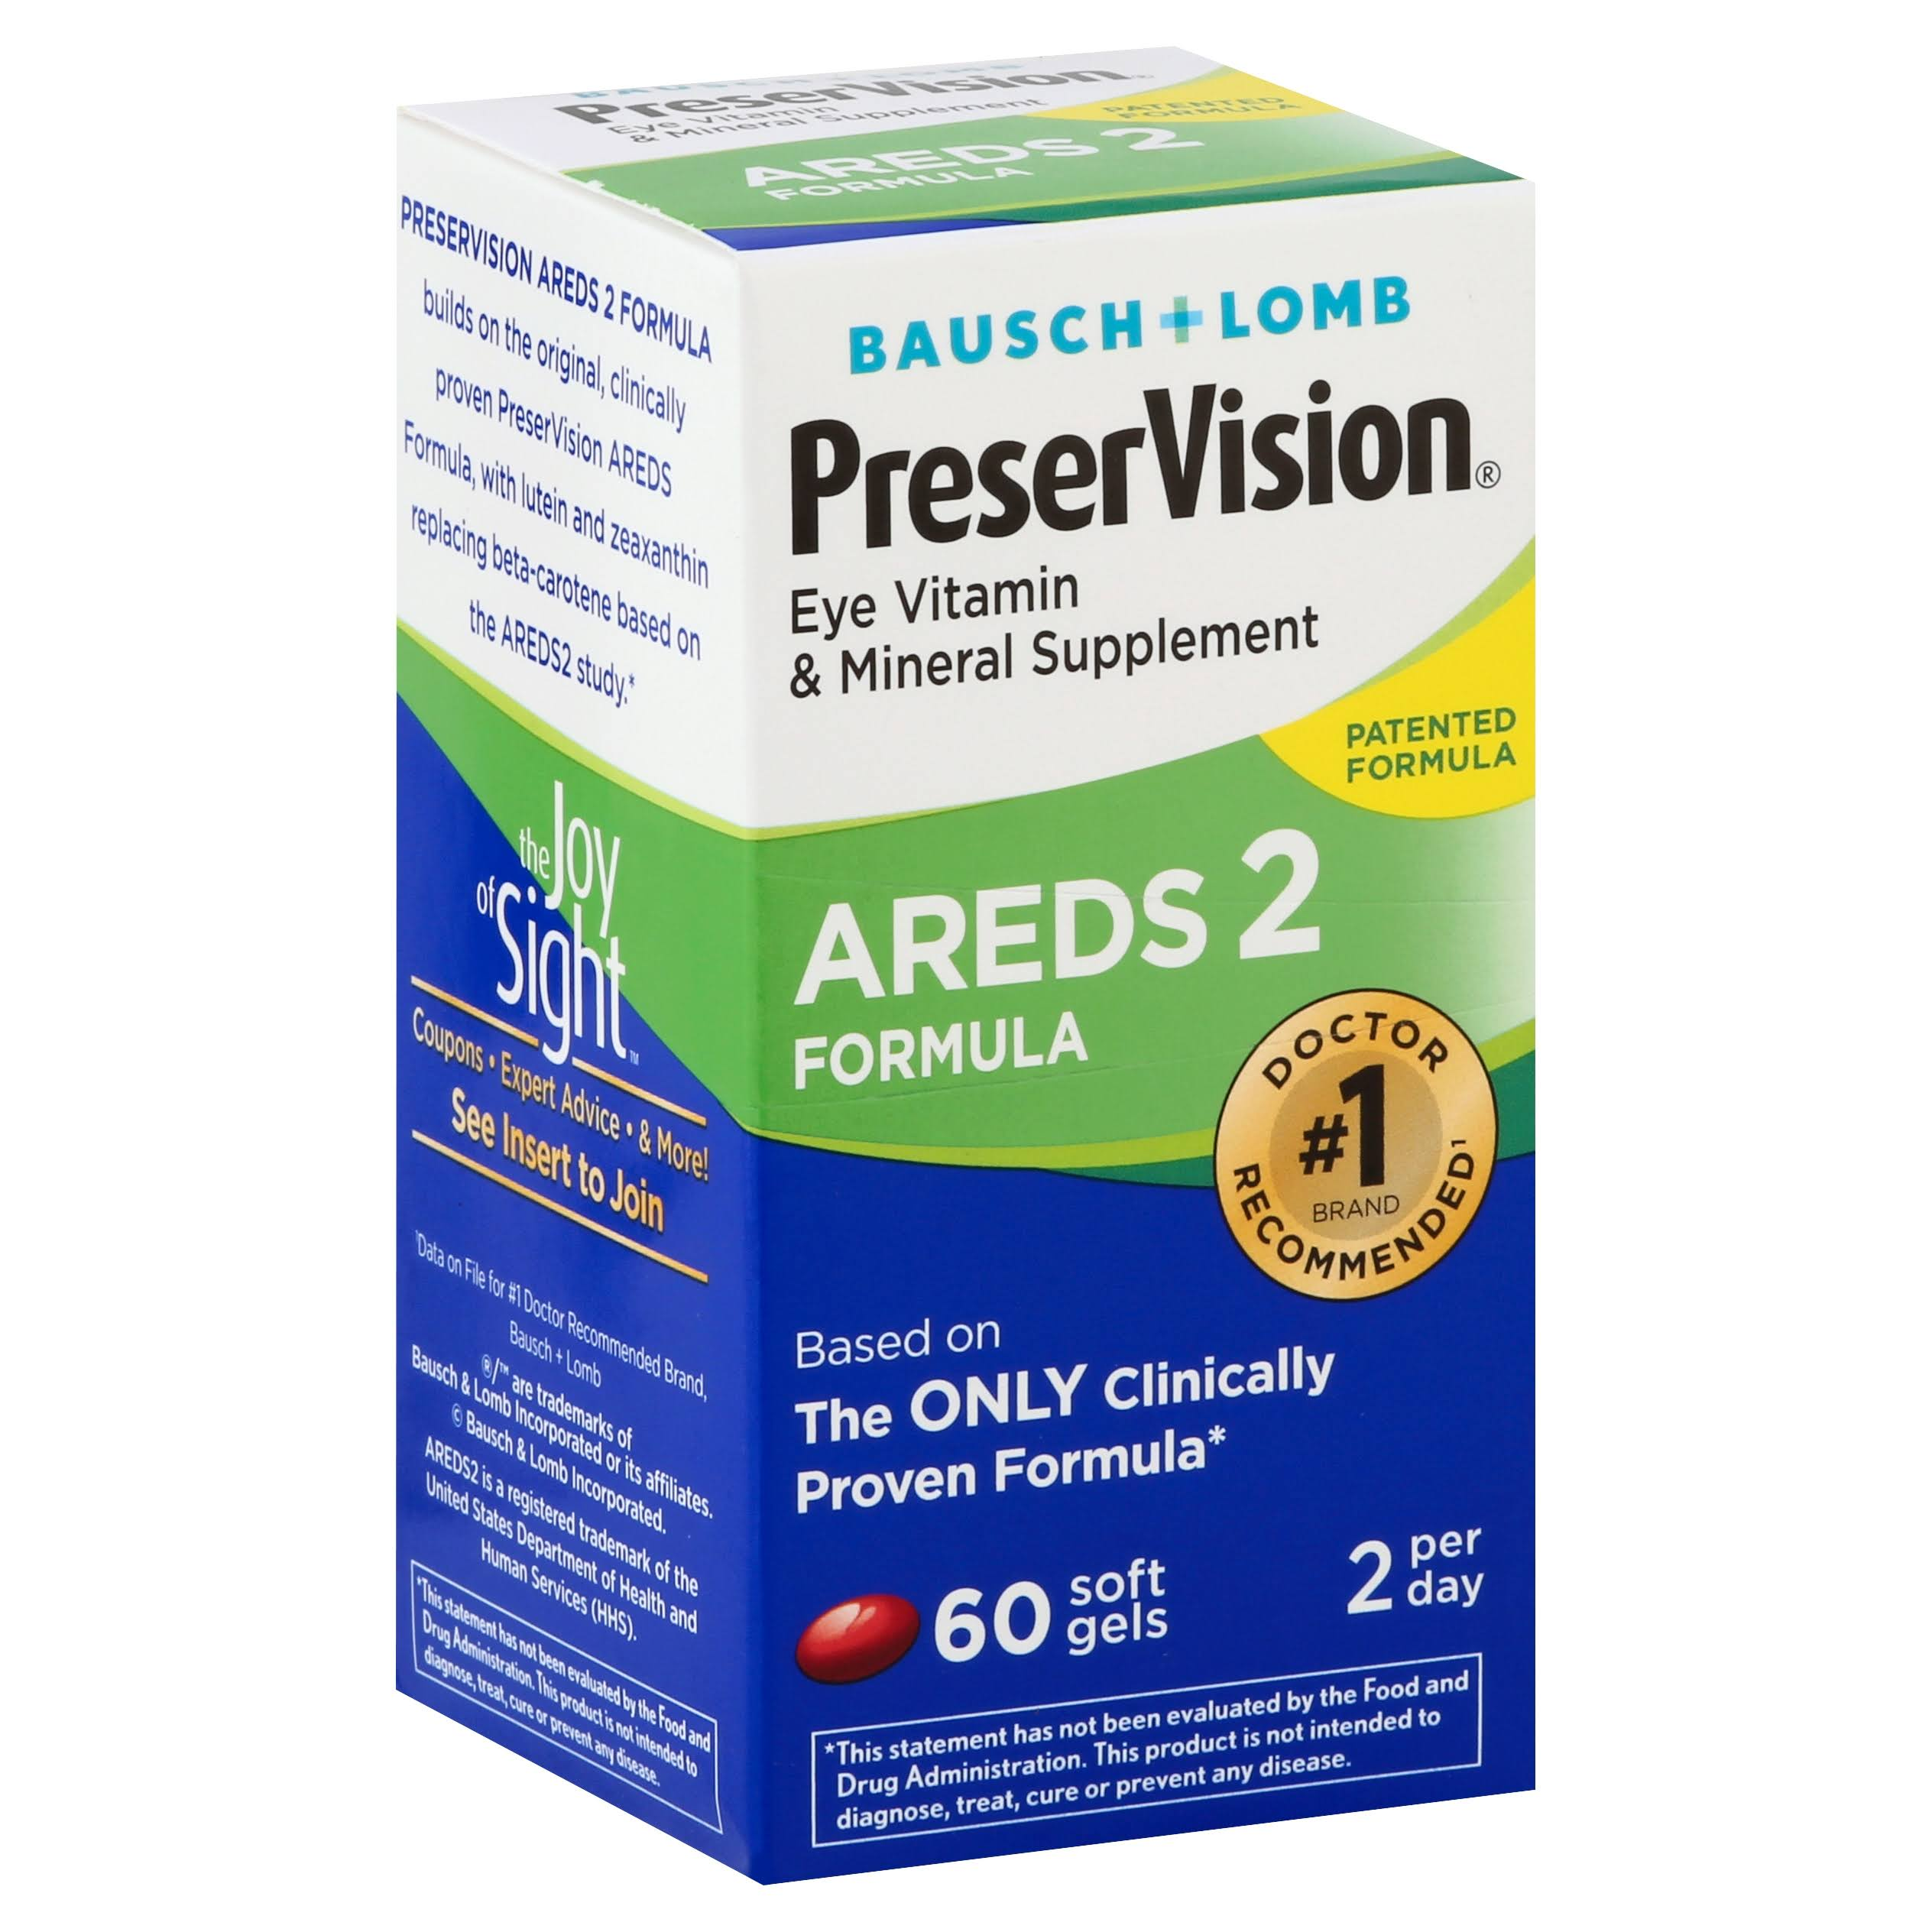 Bausch and Lomb PreserVision AREDS 2 Formula Eye Vitamin - 60ct